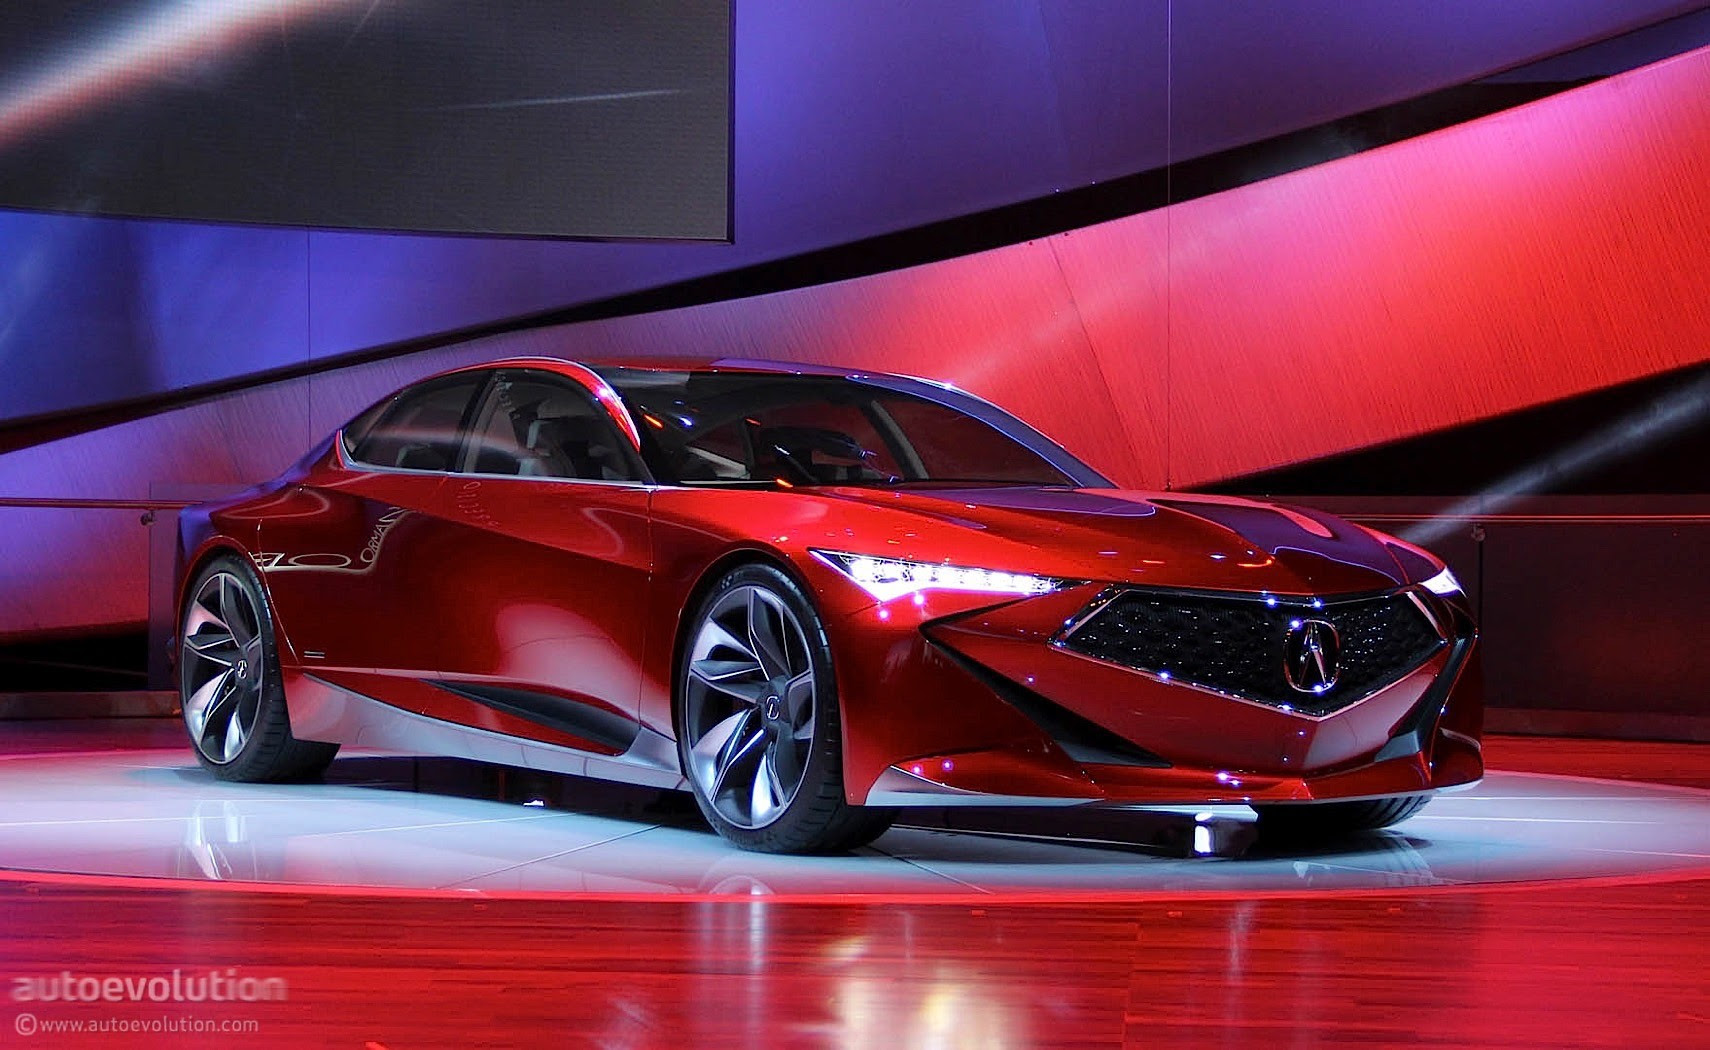 Acuras Next Generation Rlx To Be Inspired By Precision Concept Autoevolution